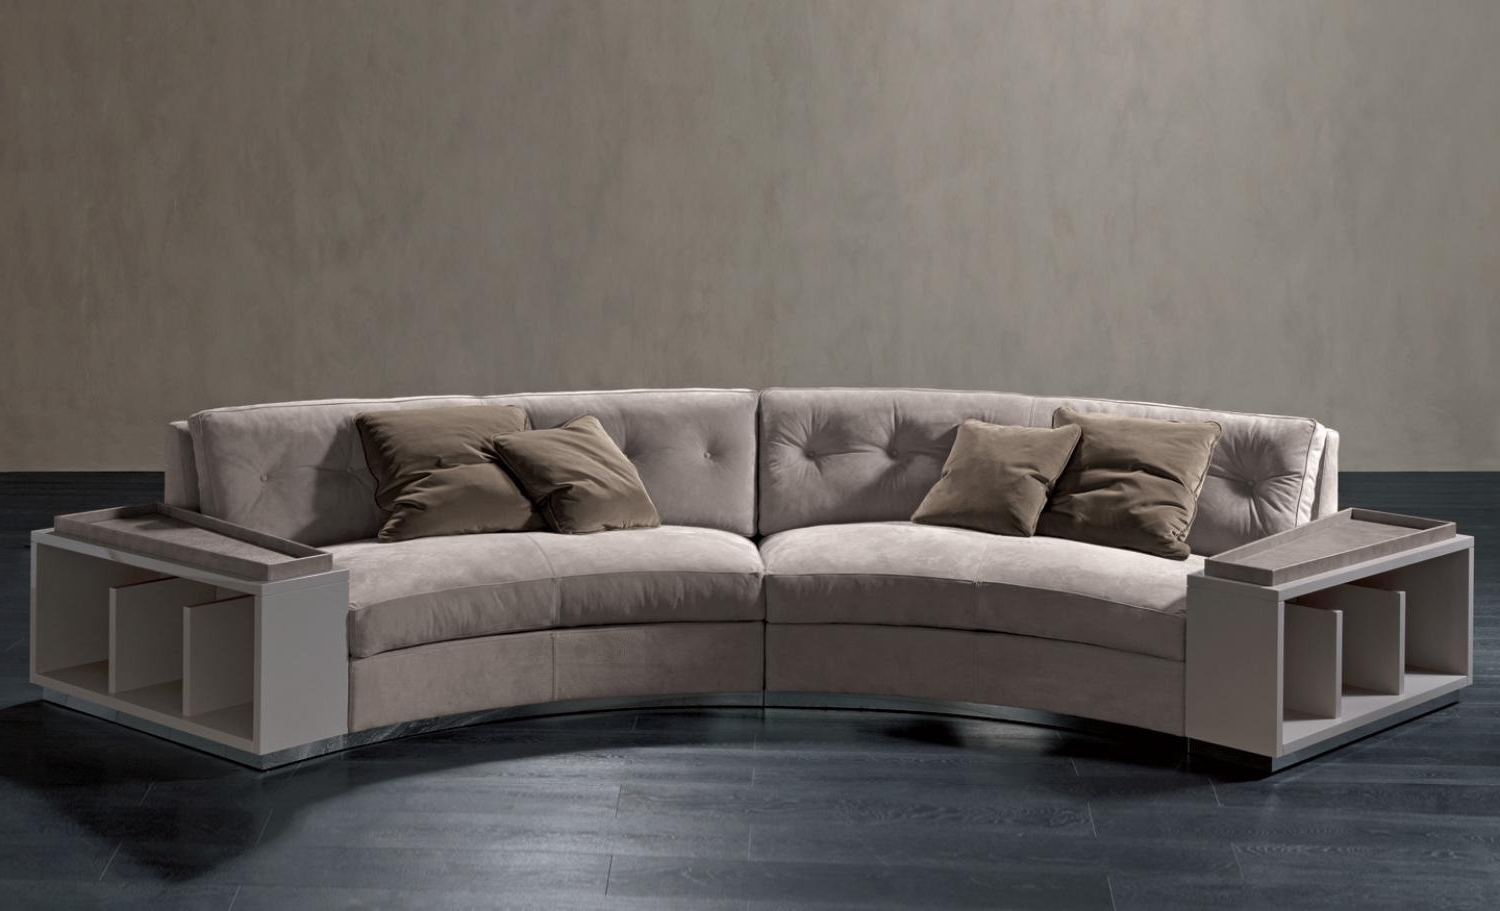 Most Recent Semicircular Sofas Throughout Semi Circular Sofa In Leather Circus, Rugiano – Luxury Furniture Mr (View 6 of 15)